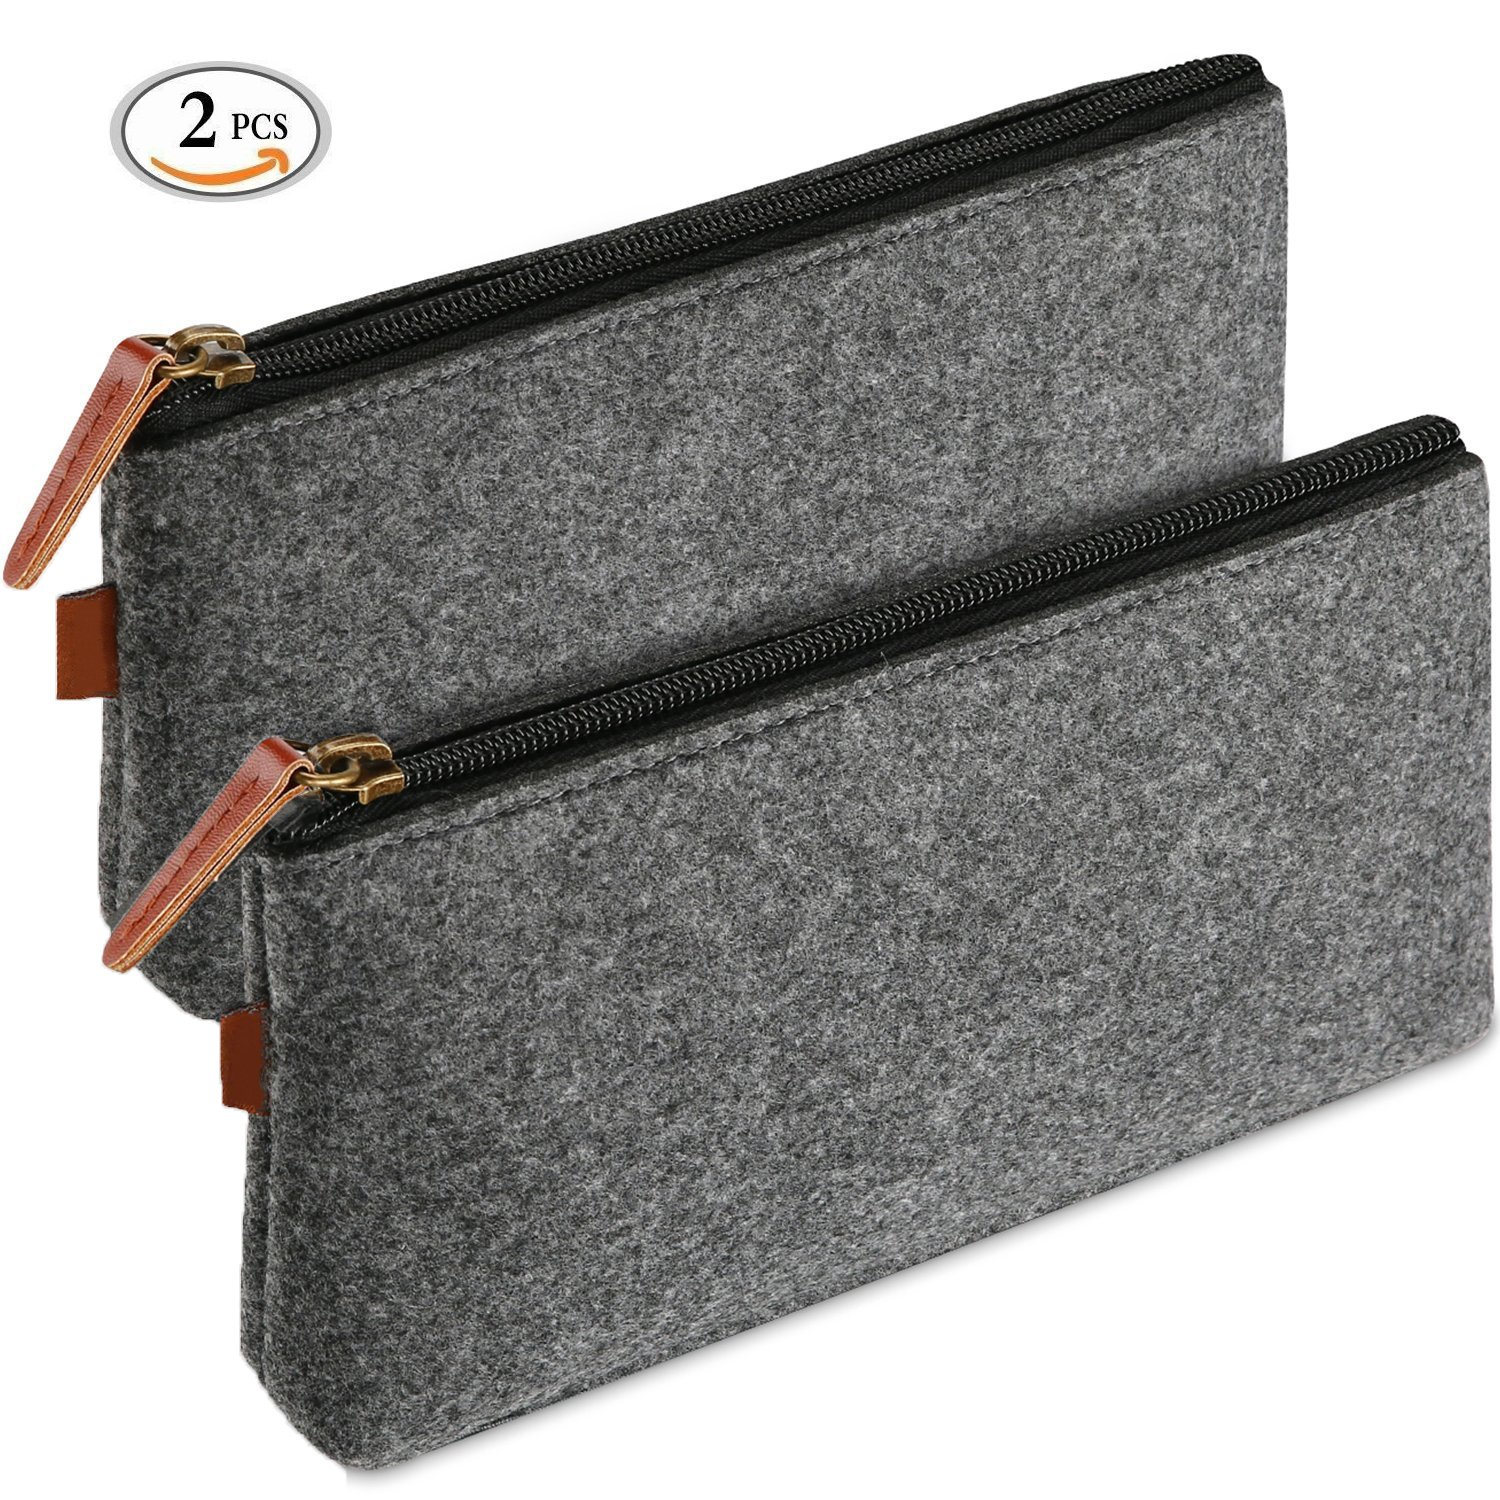 Zipper Makeup Bag Pamty Felt Pouch Cosmetic Bags Zipper Travel Bag Makeup Organizer Pencil Bag Pen Case For Travel, Toiletries,Cosmetics, Make Up,Cables,Gadgets,Pens, Pencils, Highlighters (2 Pack)